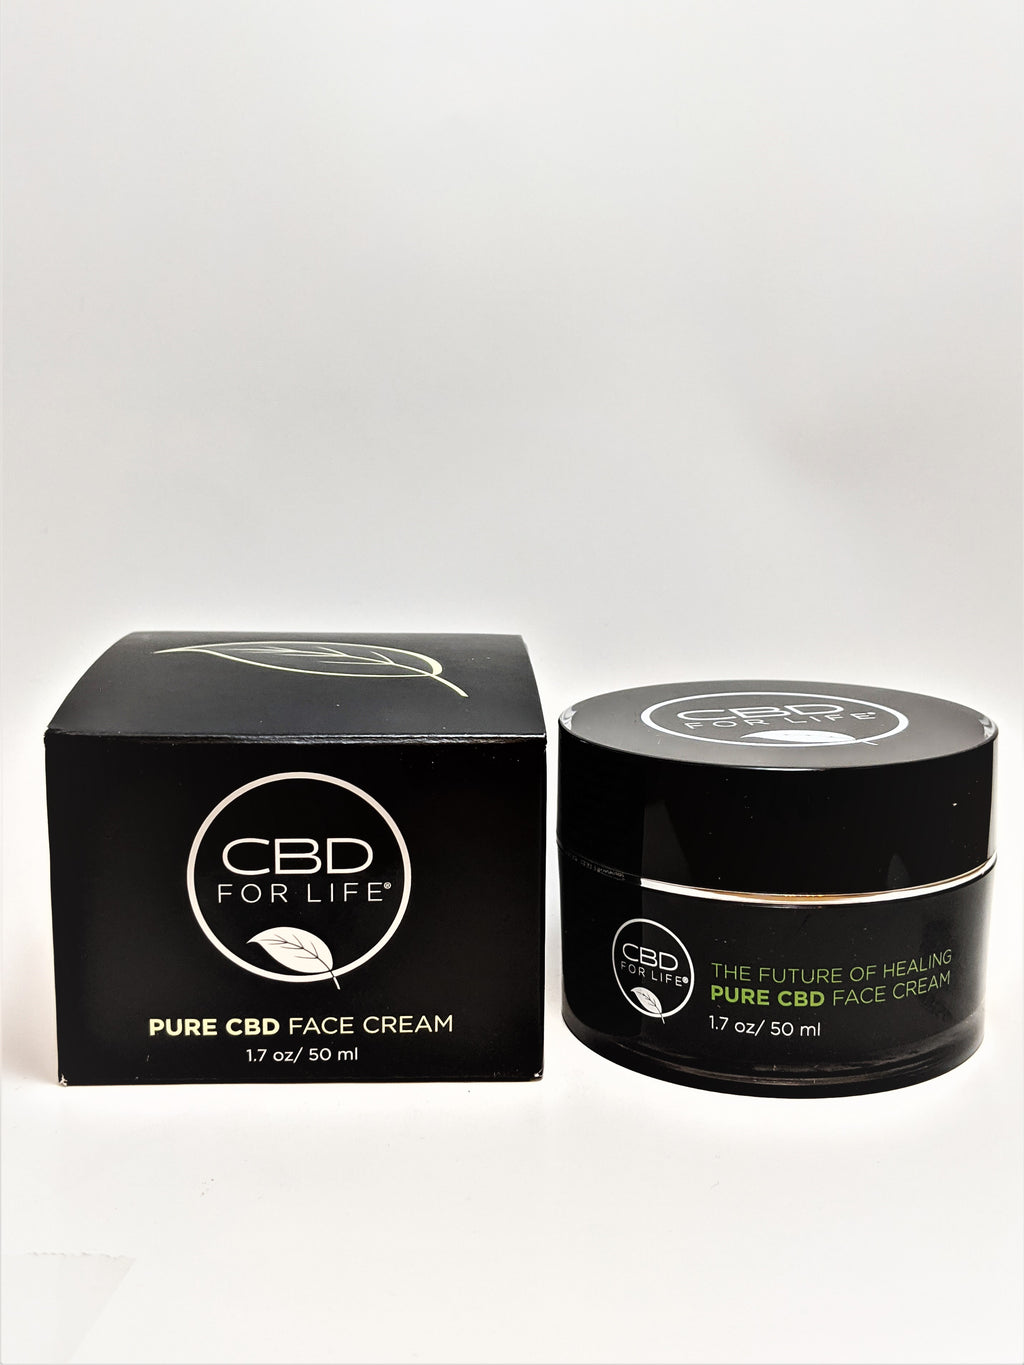 CBD For Life Face Cream - CBD Central